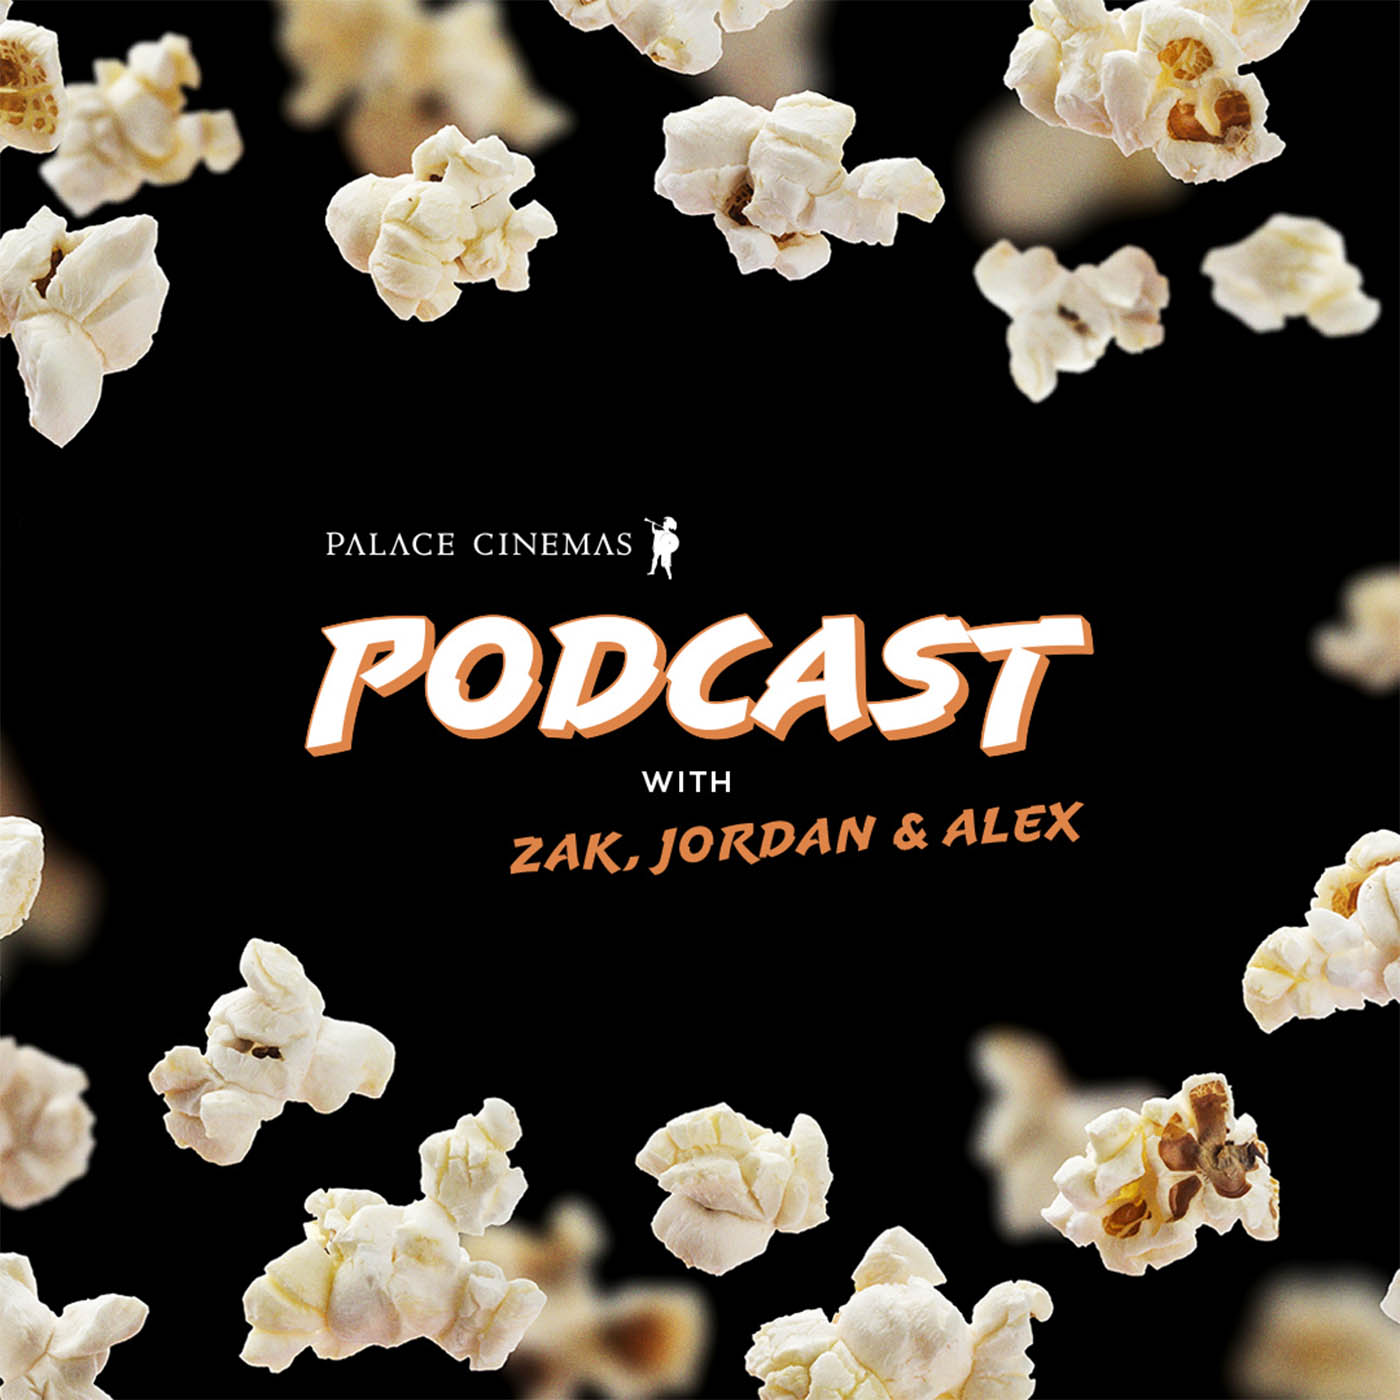 Show artwork for Palace Cinemas Podcast